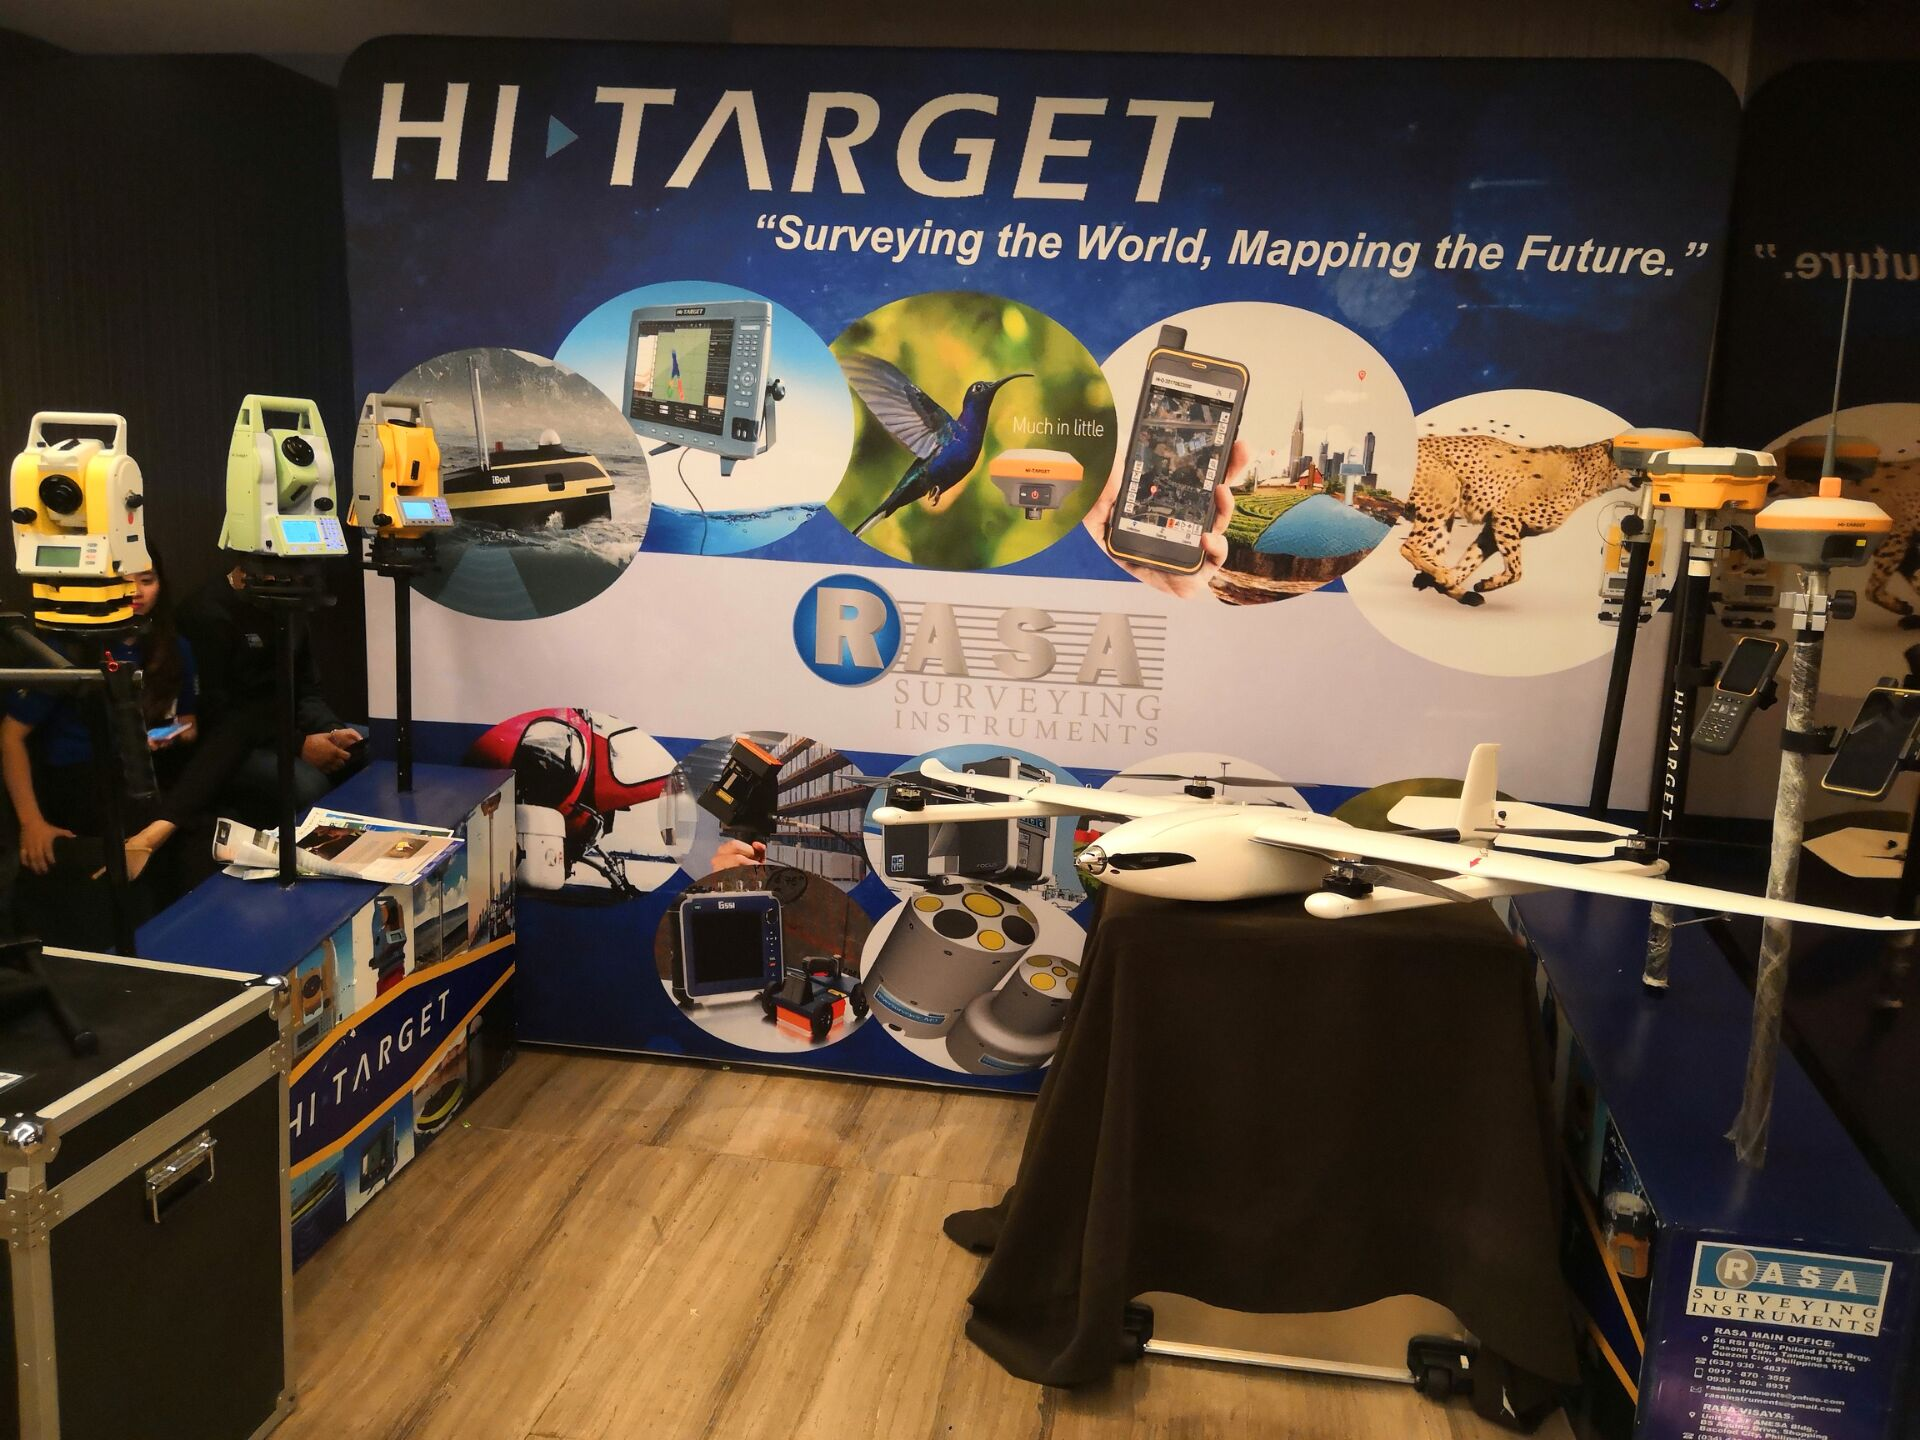 20190318054053966 - Hi-Target Participated in RASA Technology Forum 2019